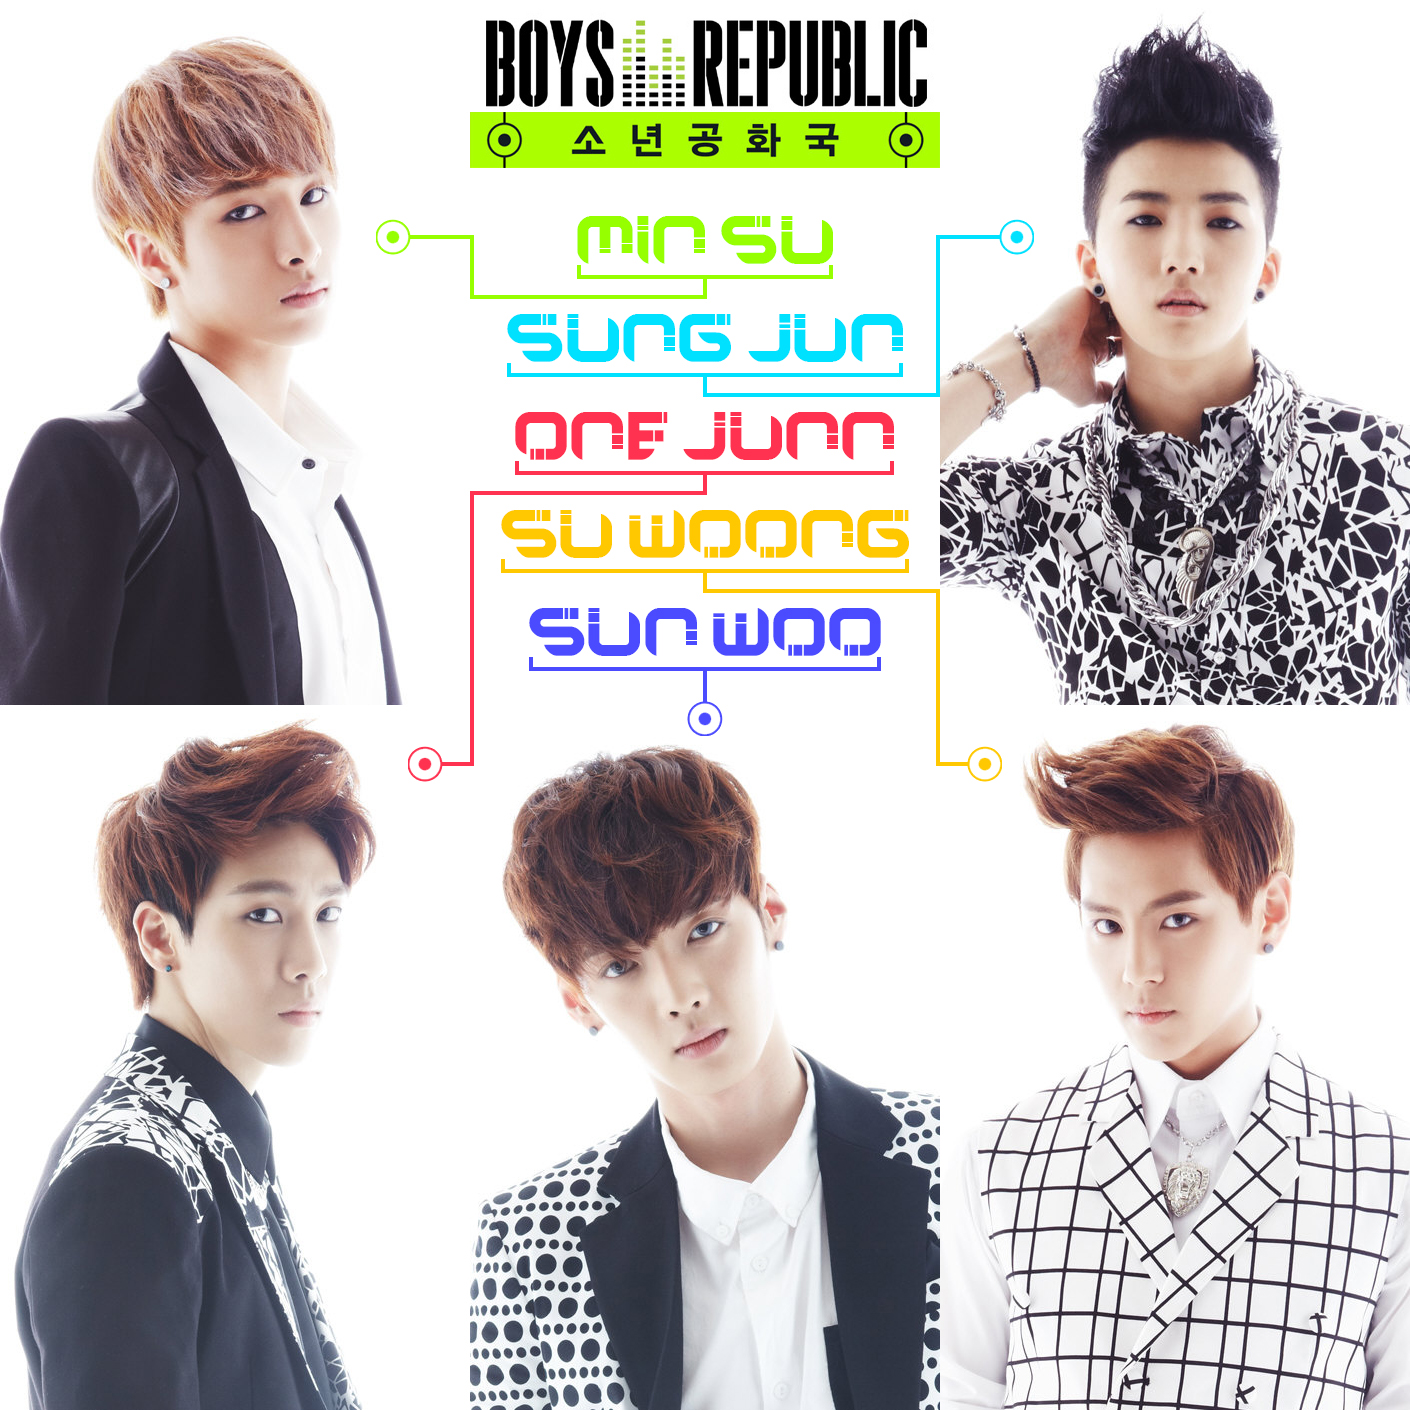 Dress up lyrics boy republic - Boys Republic Lyrics